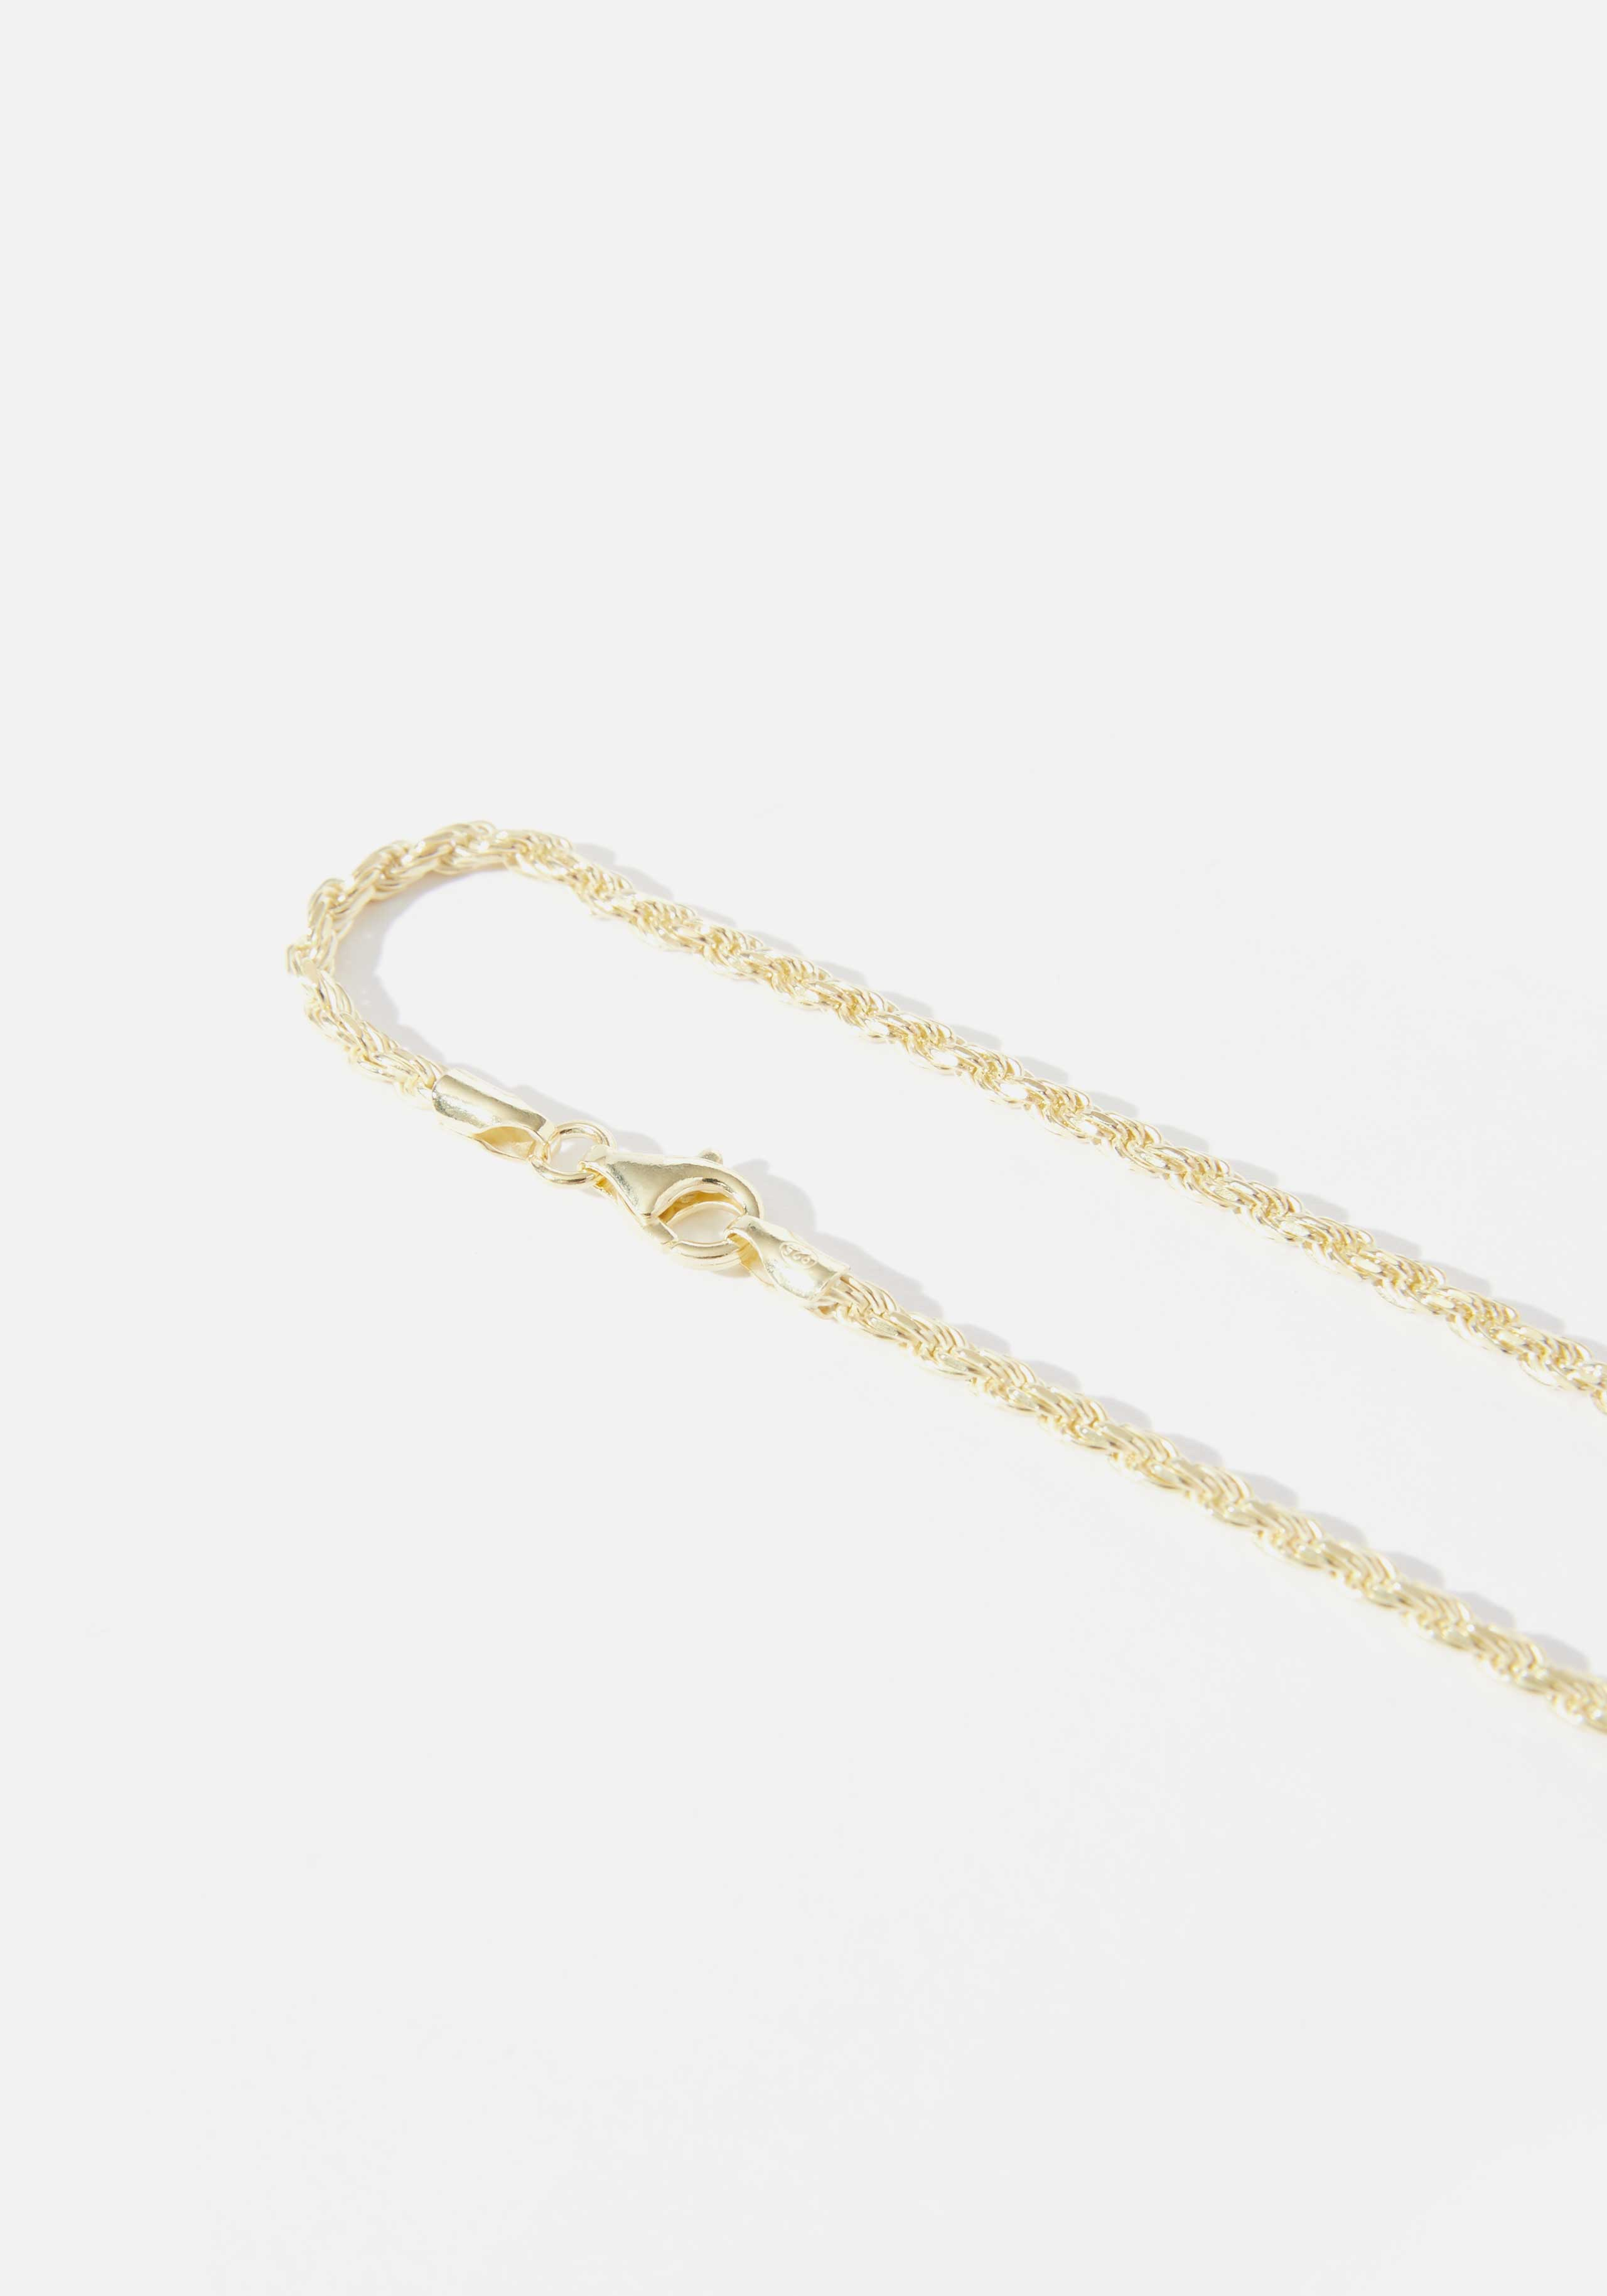 mki rope necklace 3